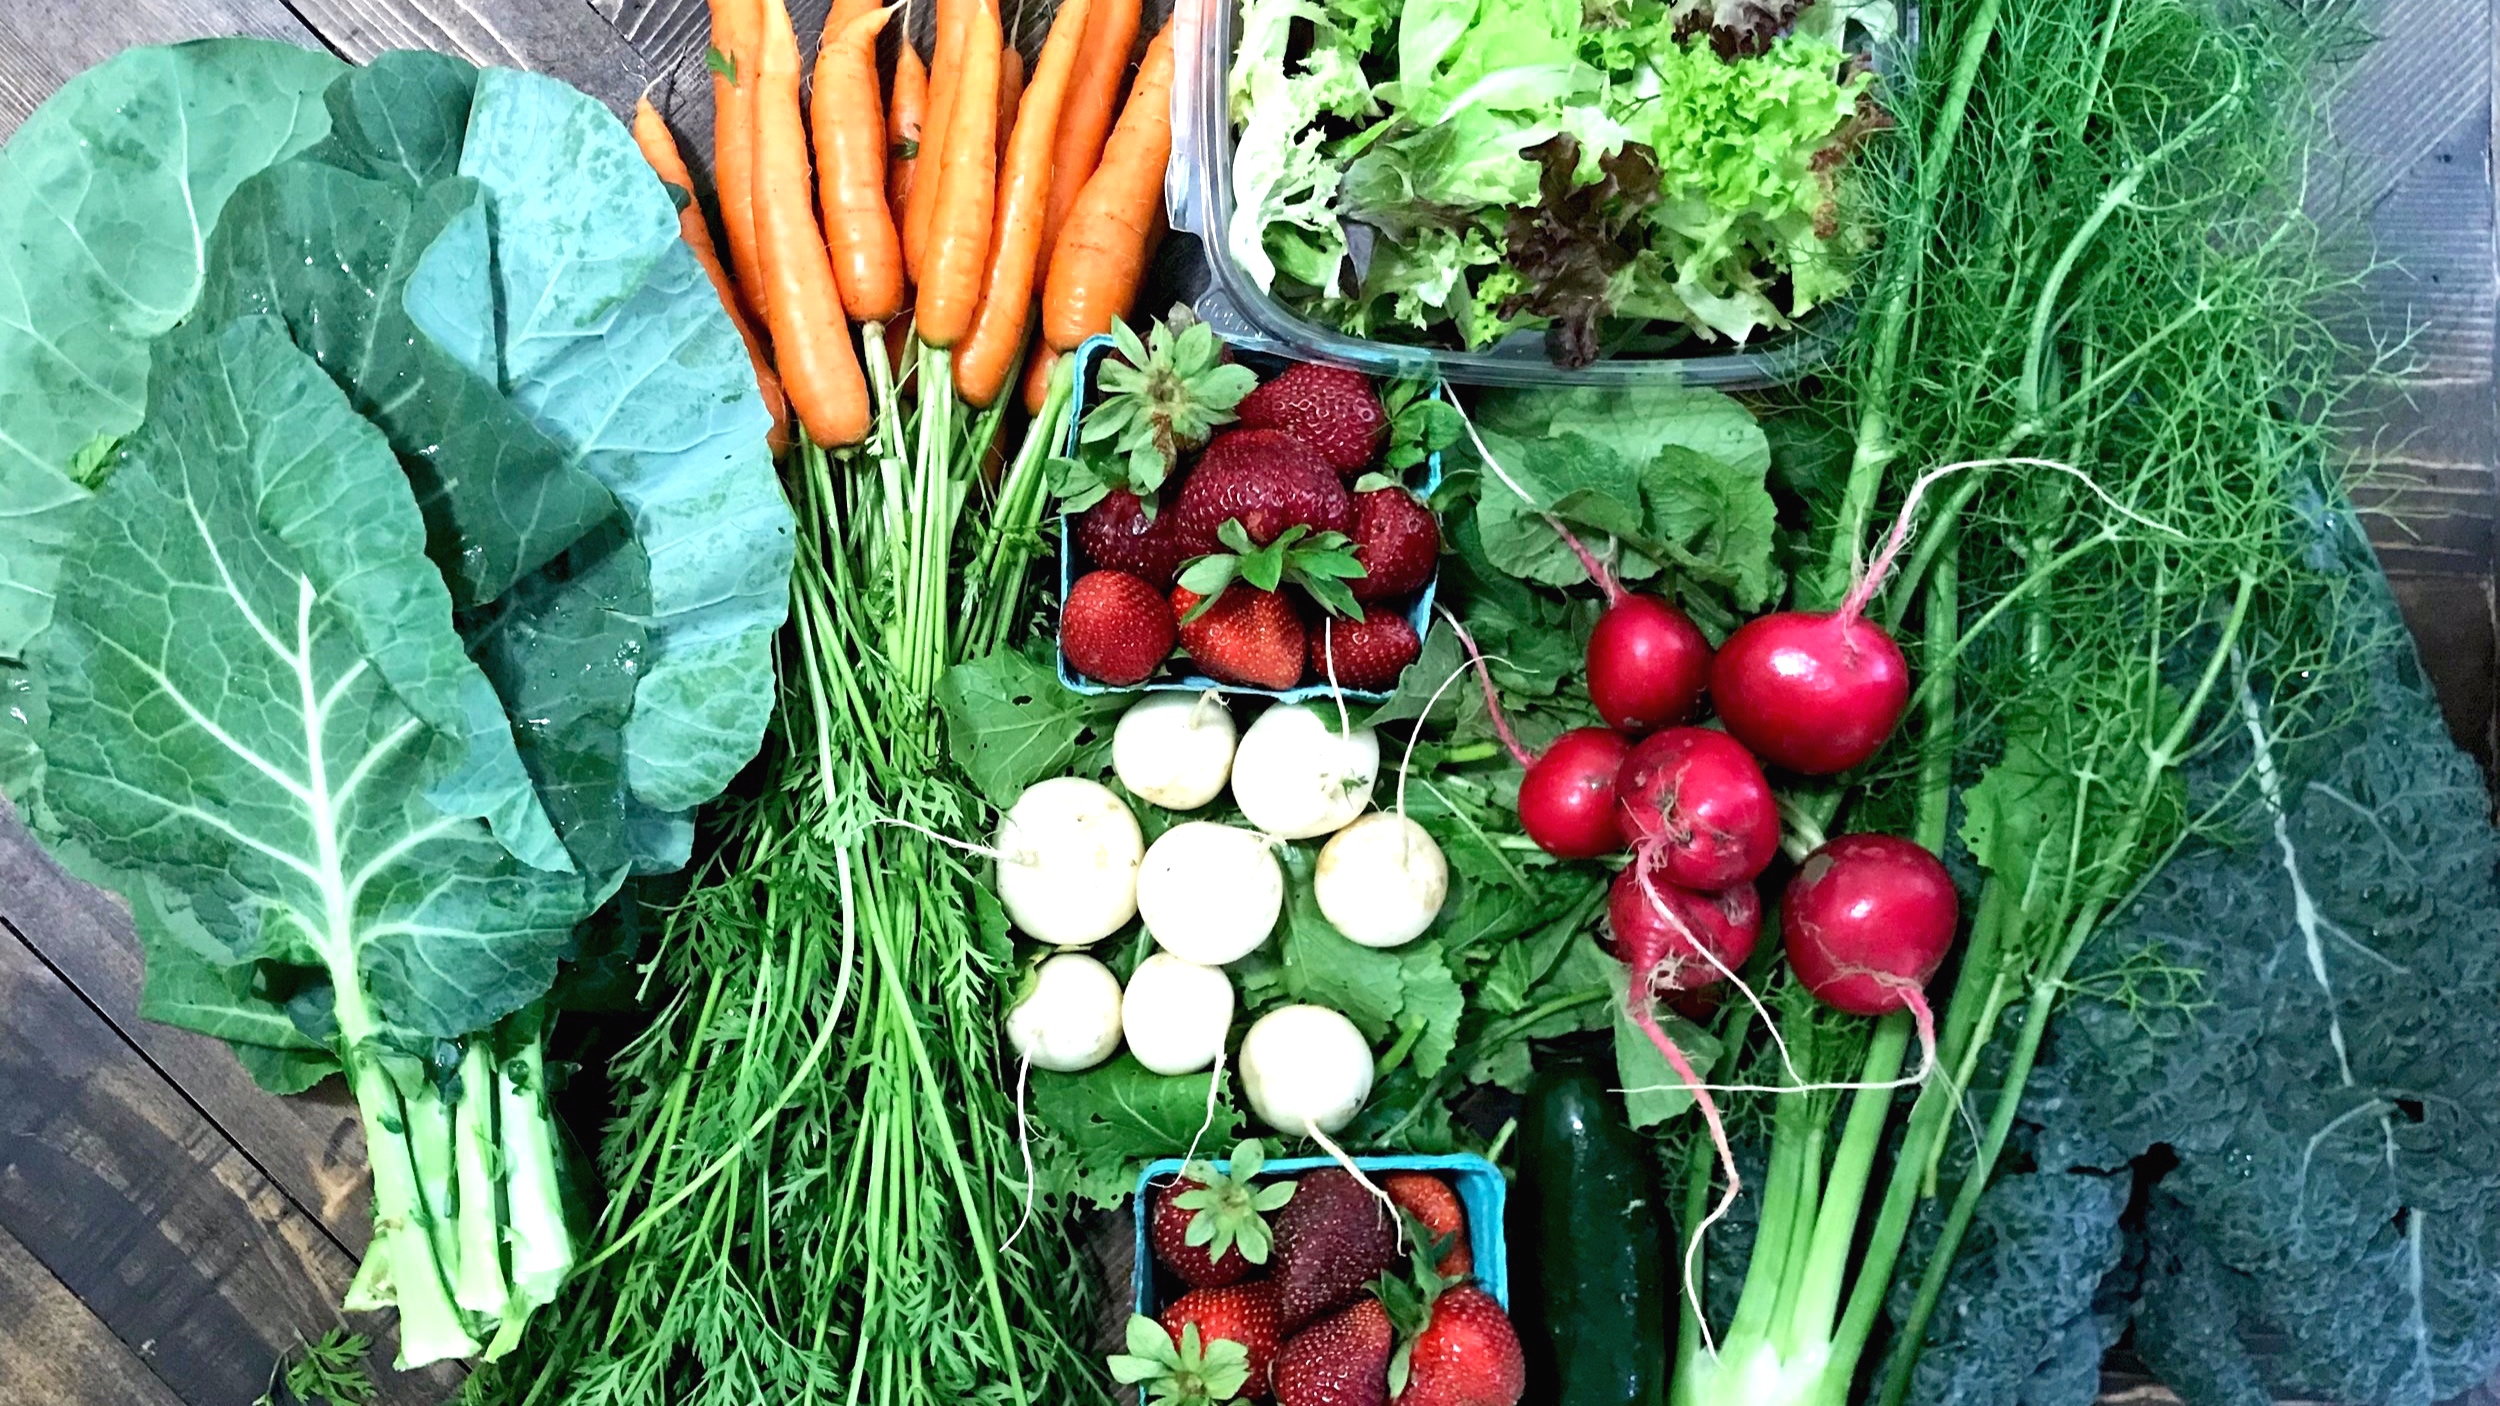 """Why join our CSA? - """"I joined the CSA to incorporate better, clean food into my diet, and I wanted to support my farmer and my community."""" -CSA member 2018"""